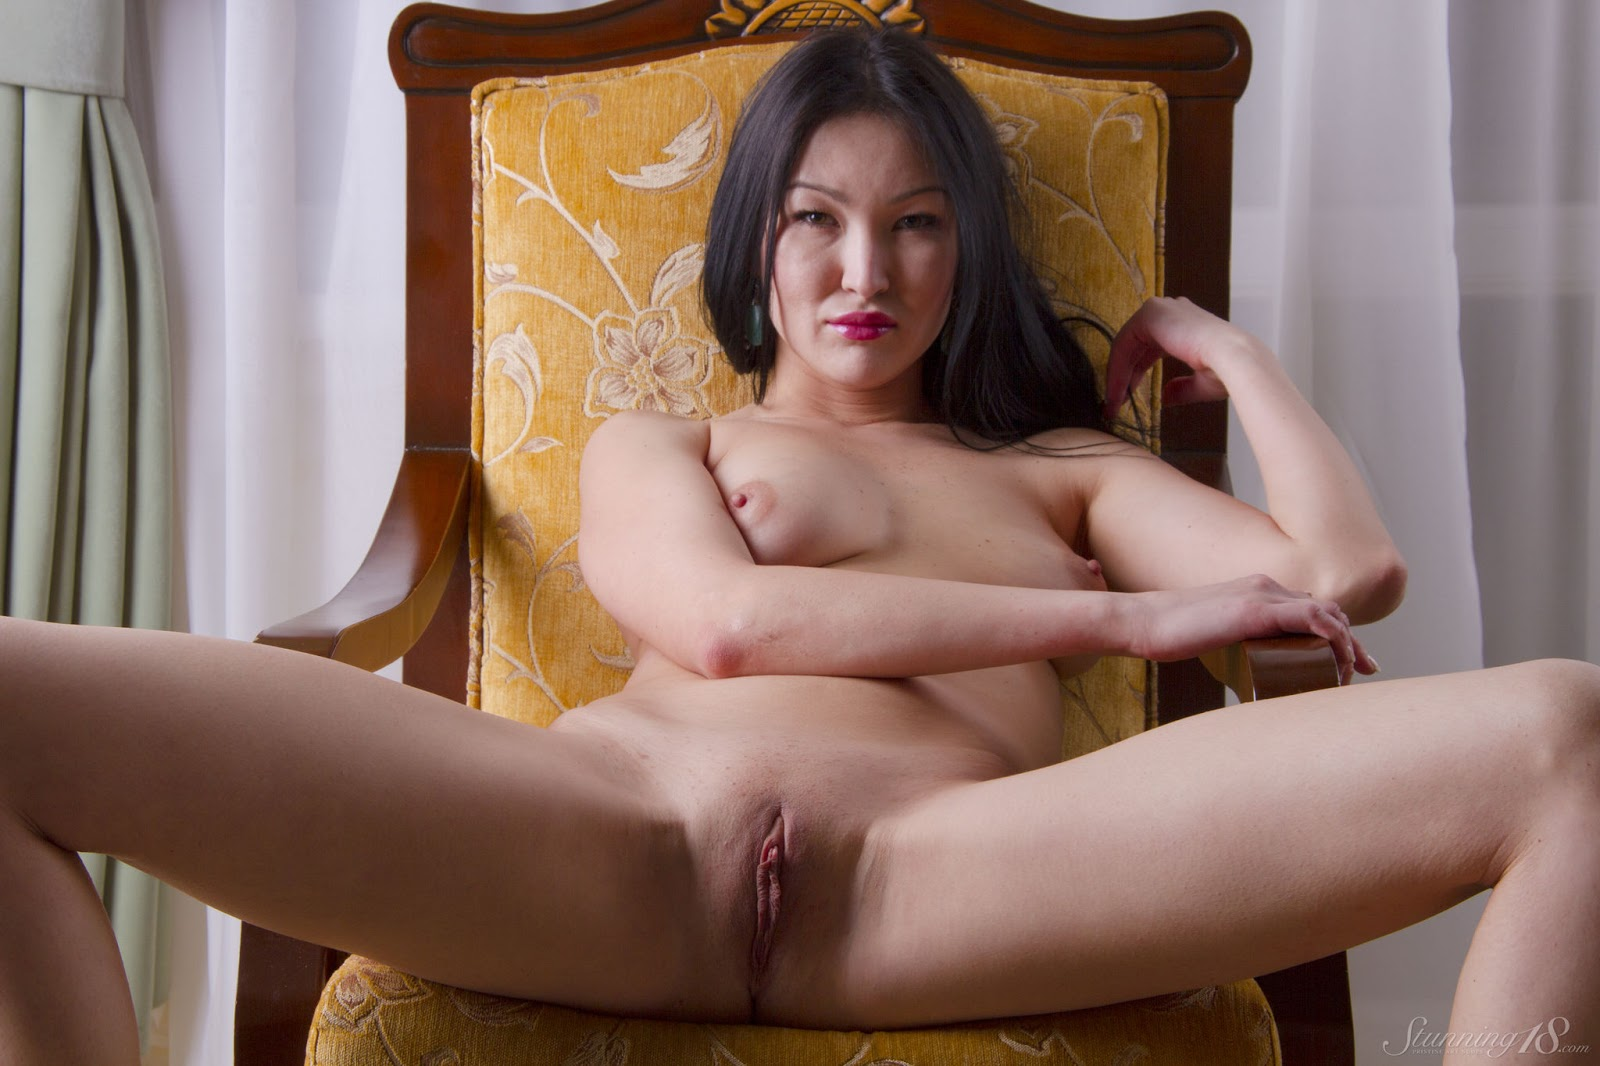 Rusya: Lets PlayAb Exercise for More Powerful Orgasms 10